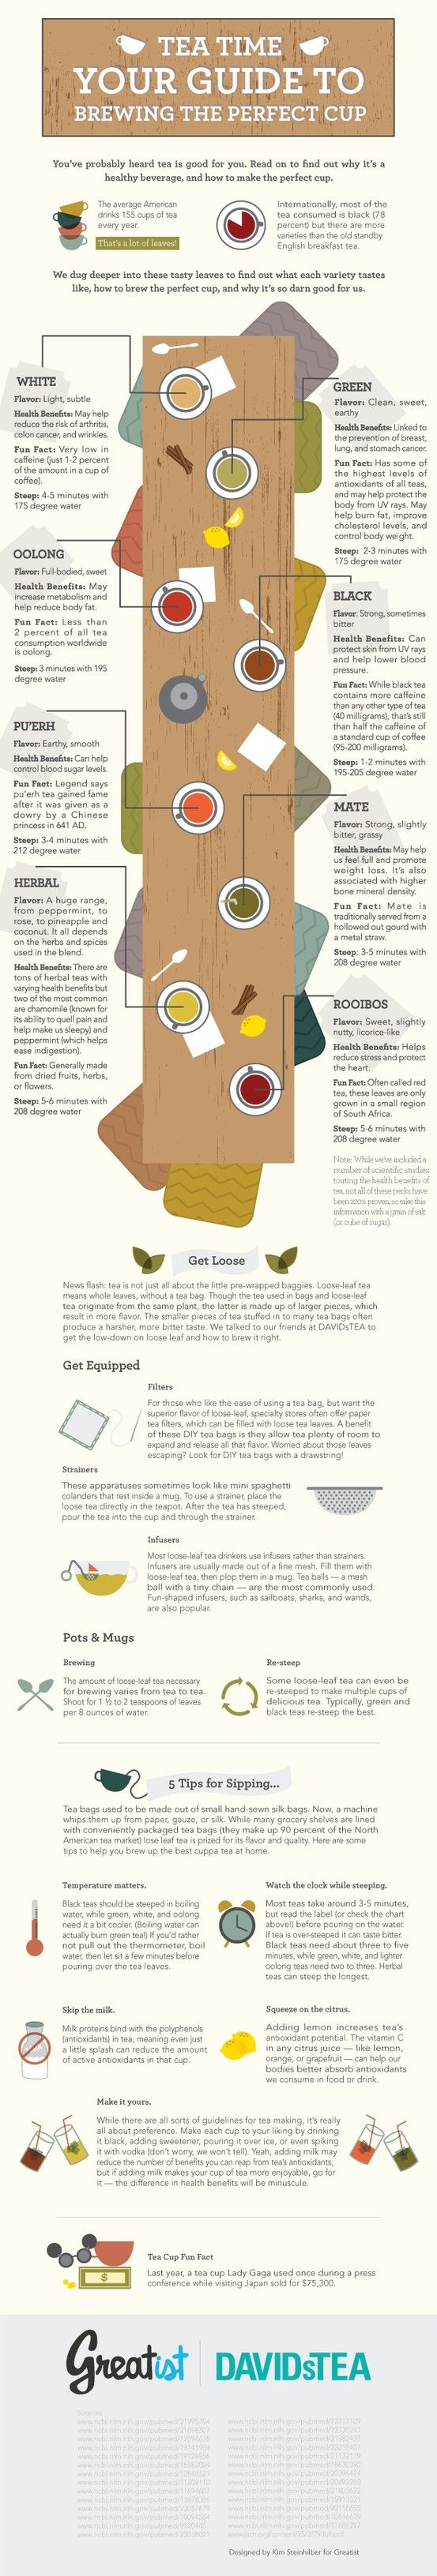 Tea Time: Your Guide to Brewing the Perfect Cup [Infographic collaboration with @Greatist]!